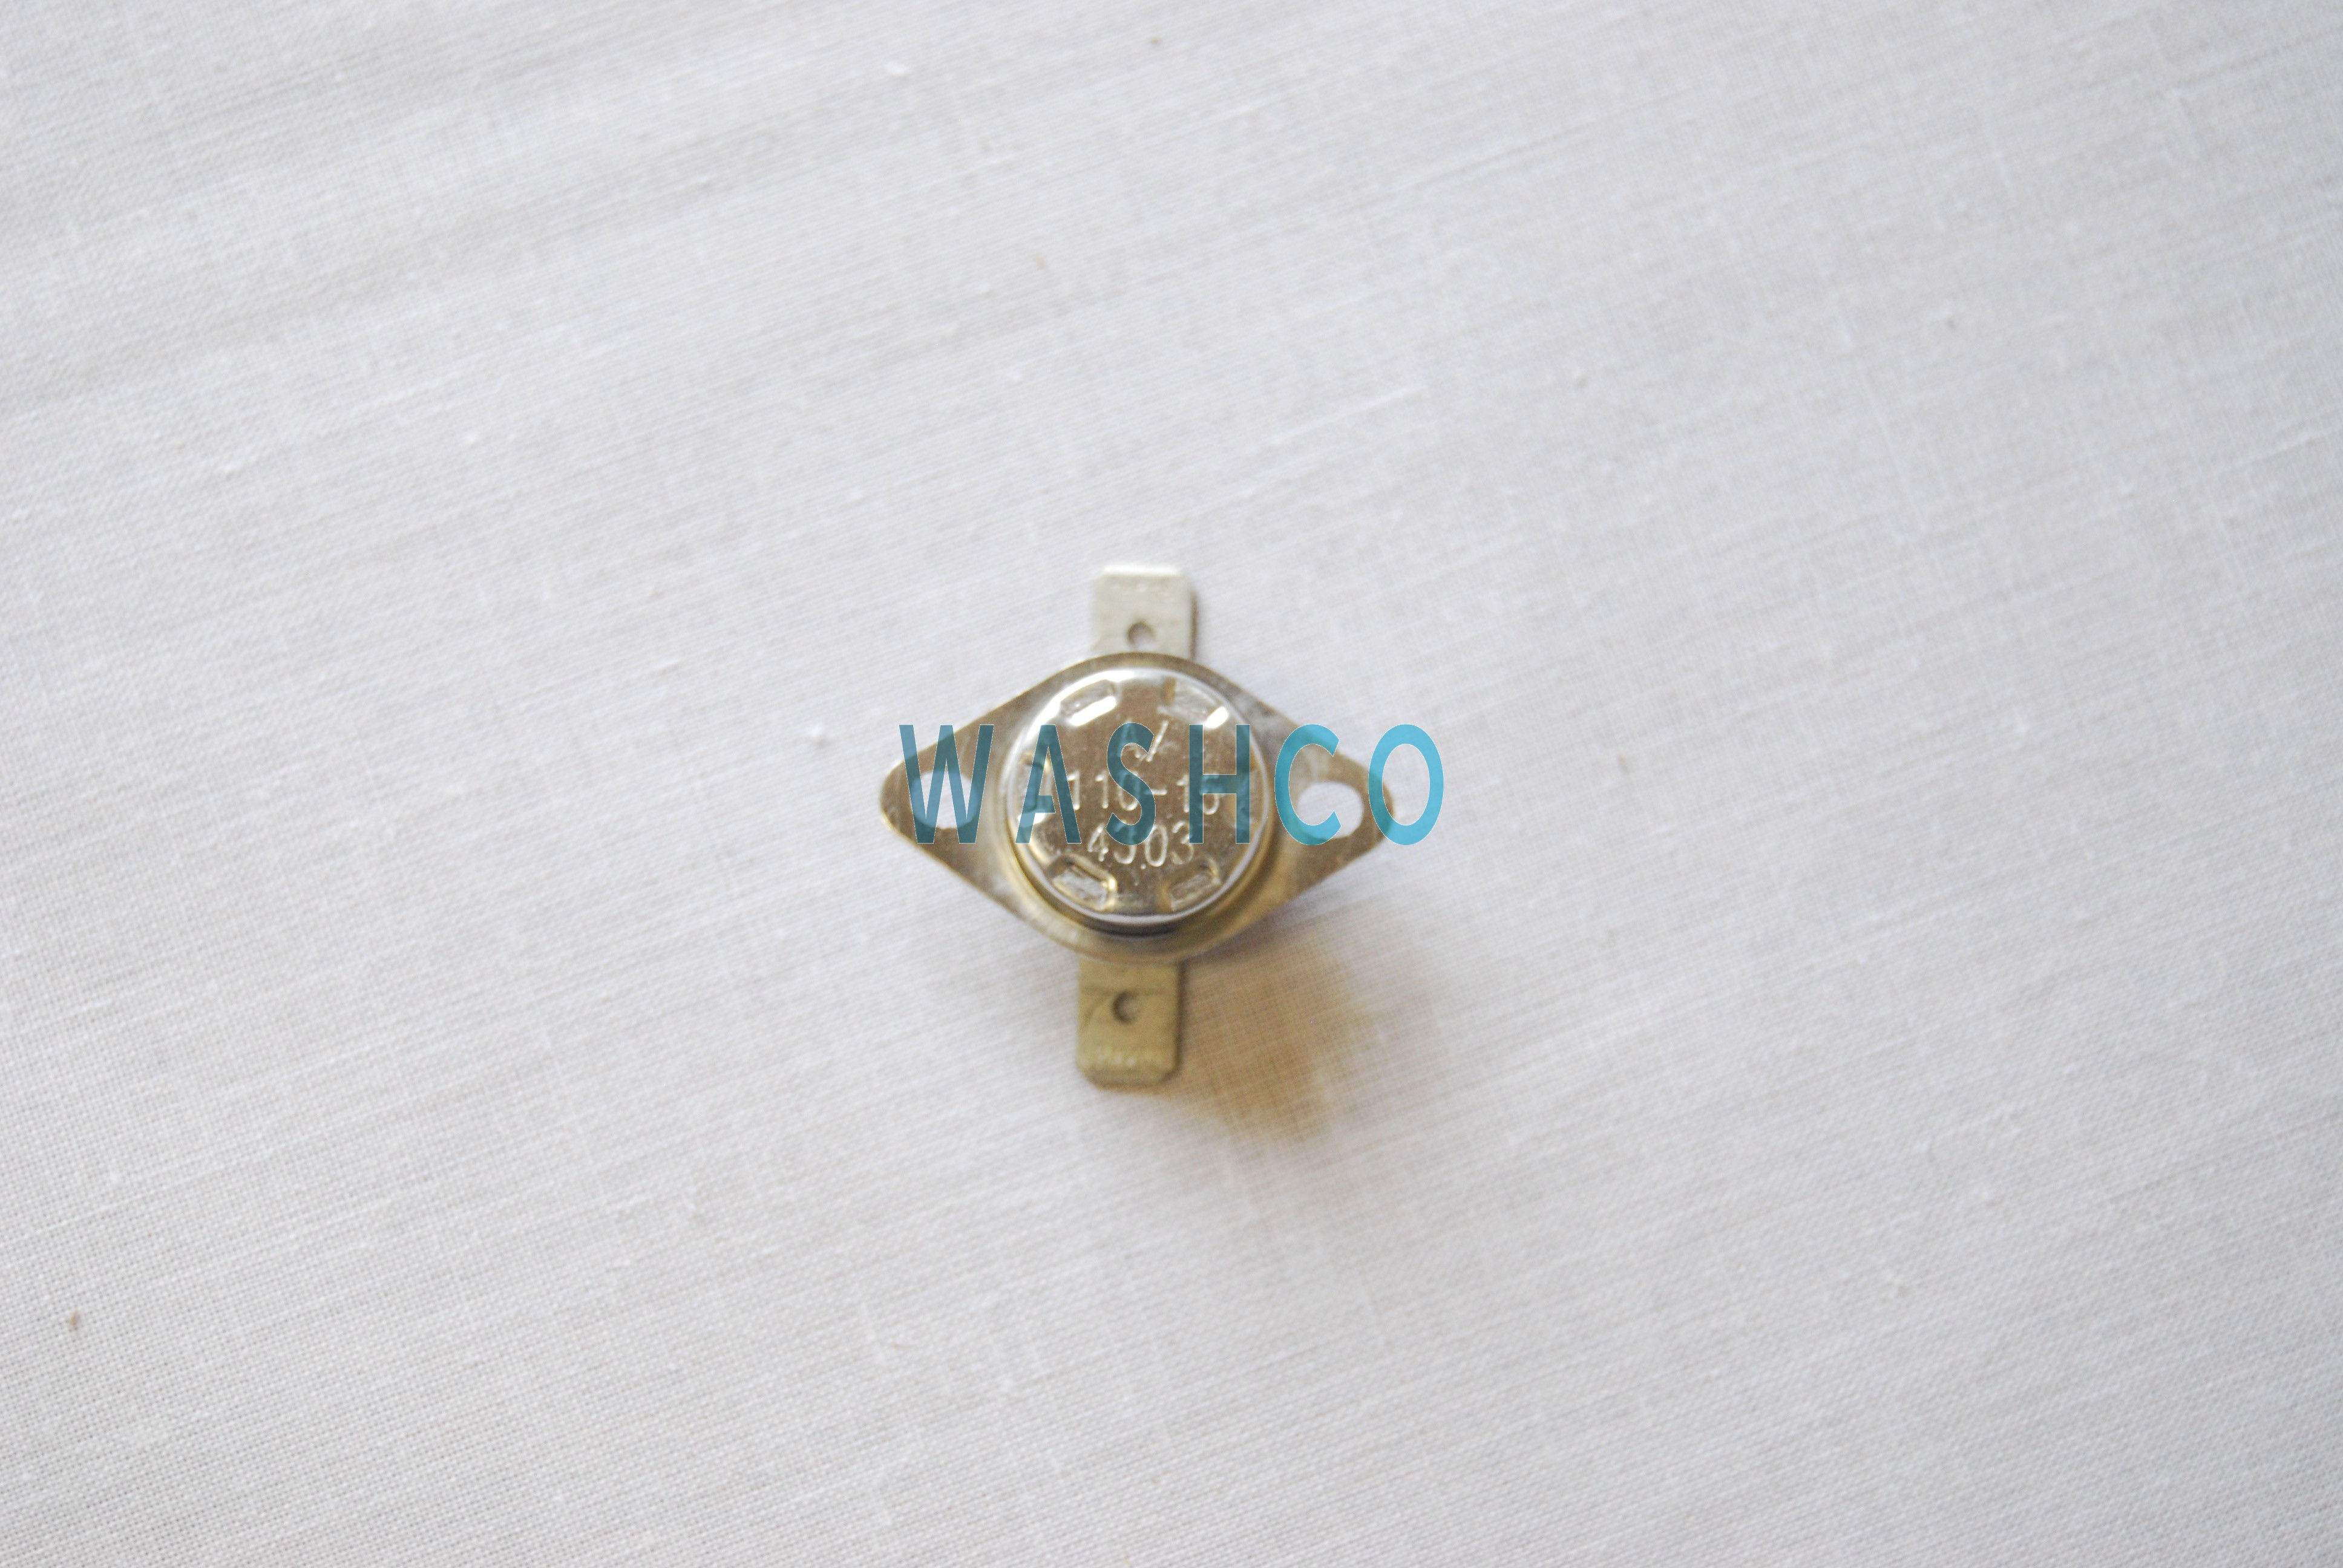 THERMOSTAT 350493 image